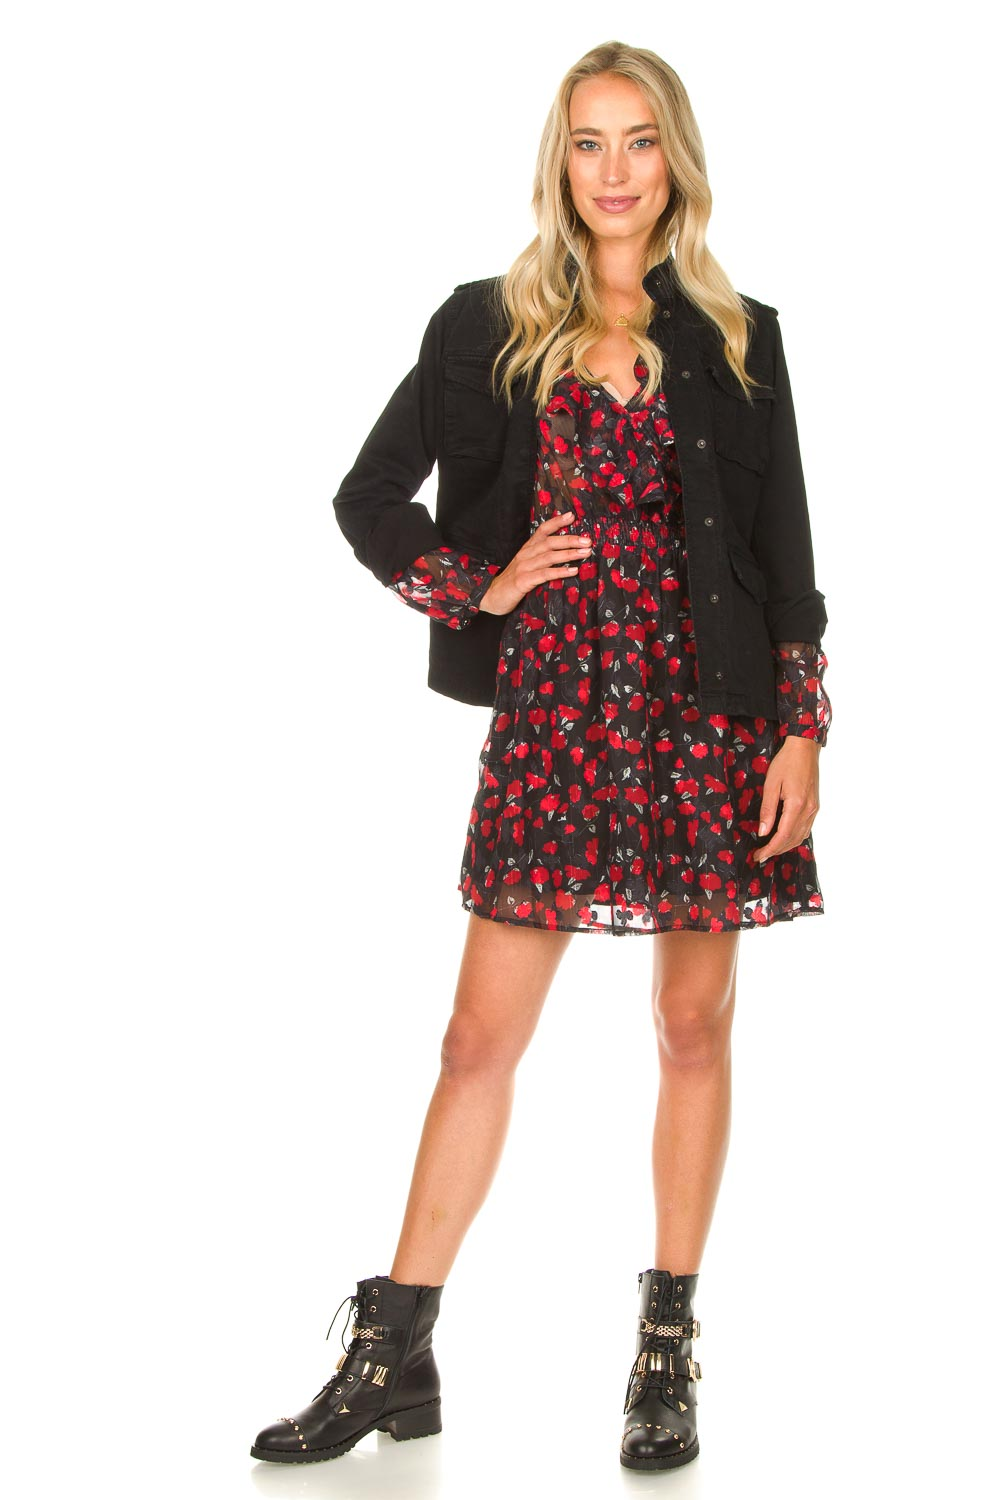 Look Print dress Gianna